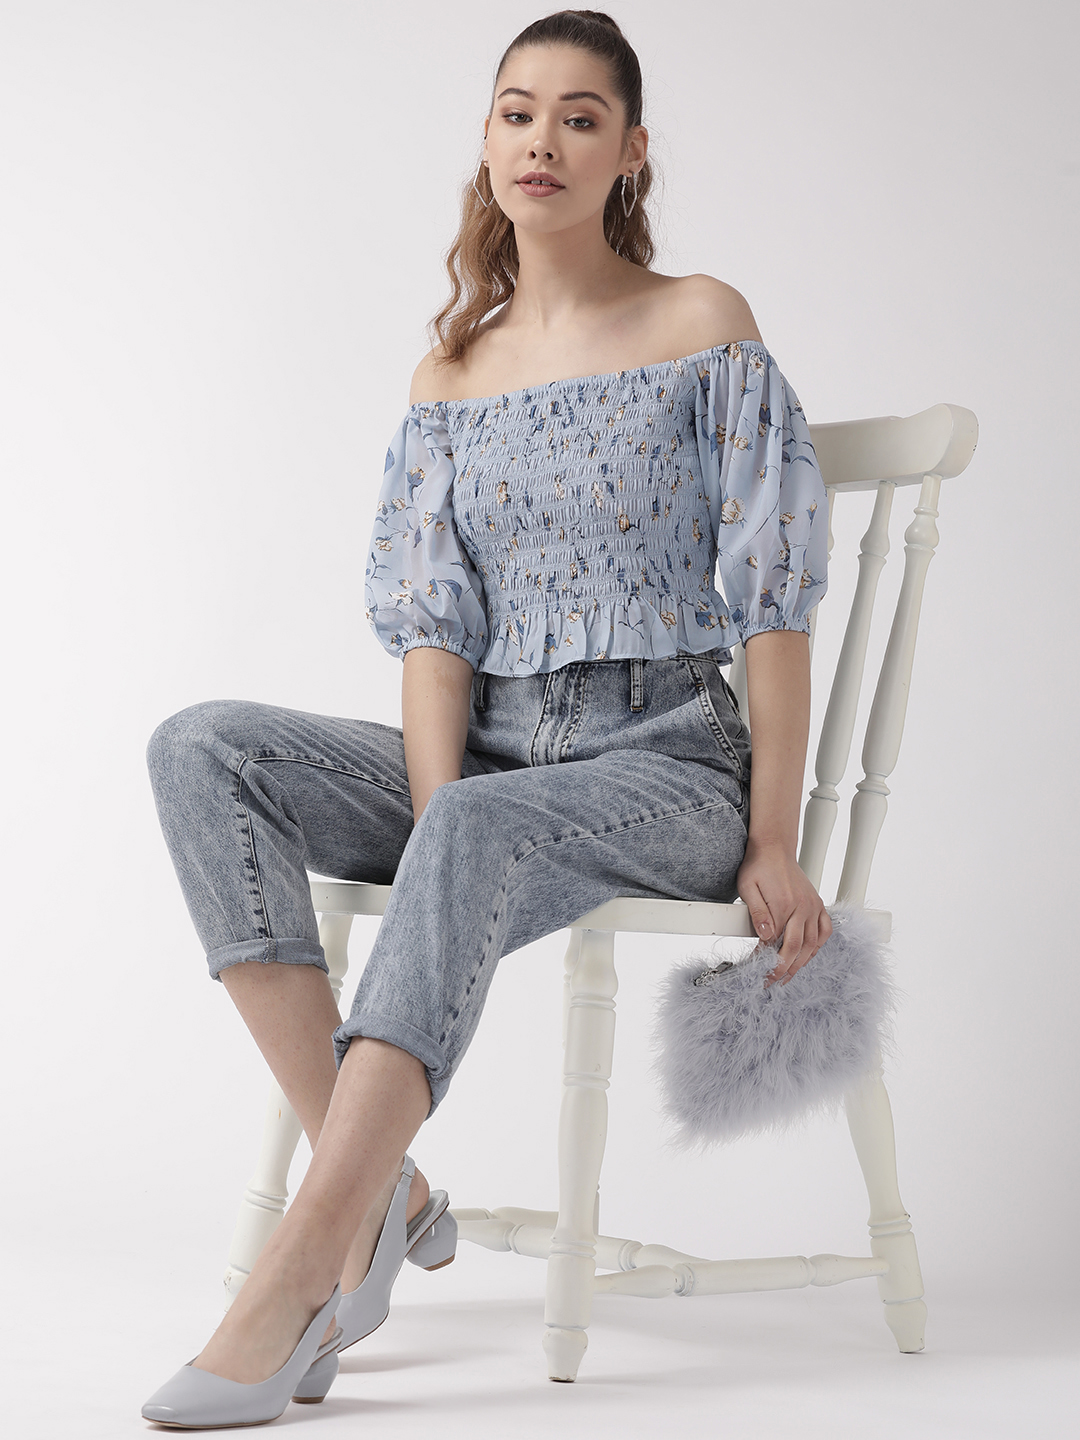 Tops-Calling You Out Cuteness Crop Top4